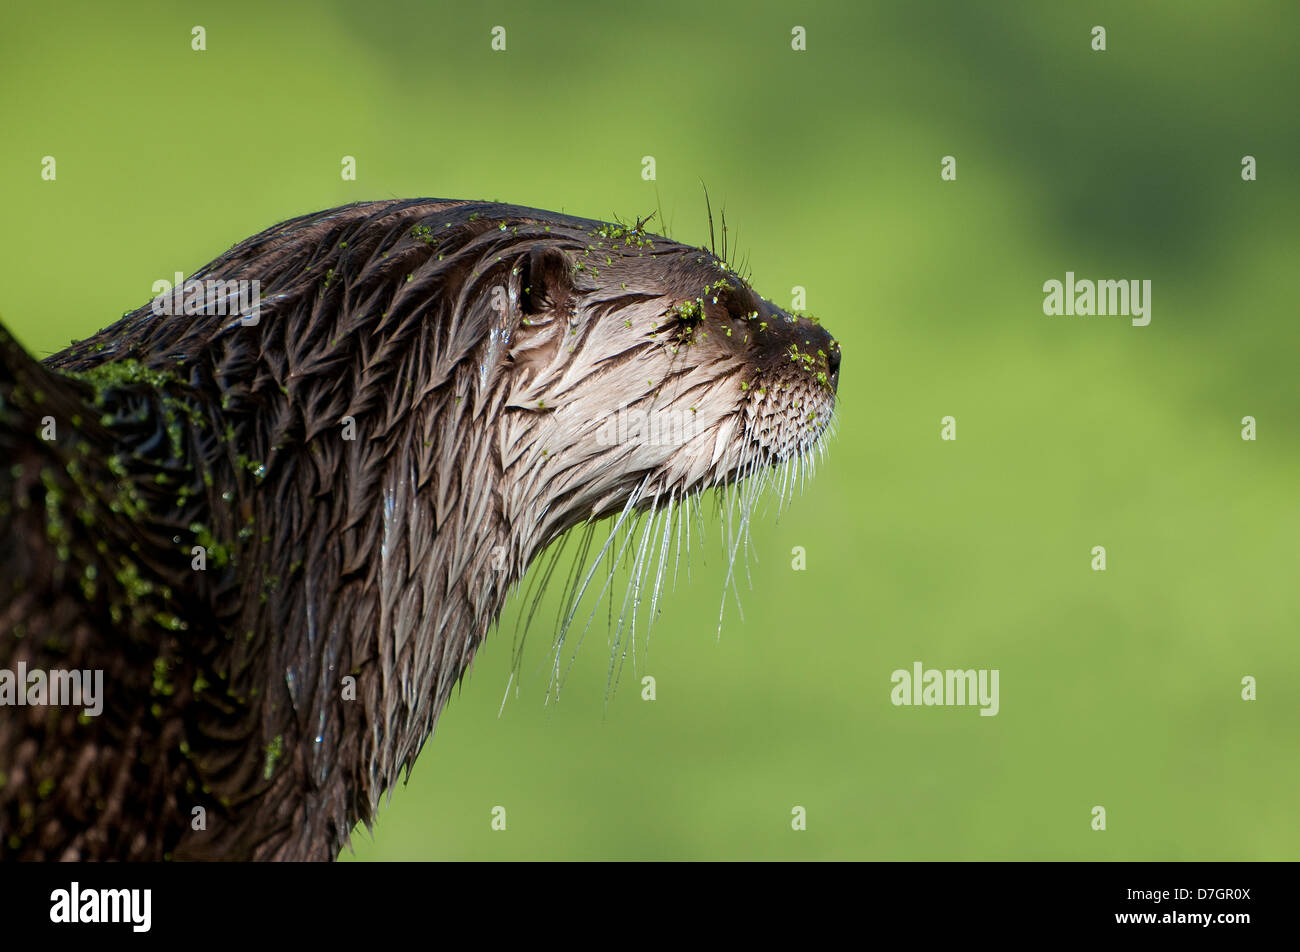 american river otter on green background - Stock Image